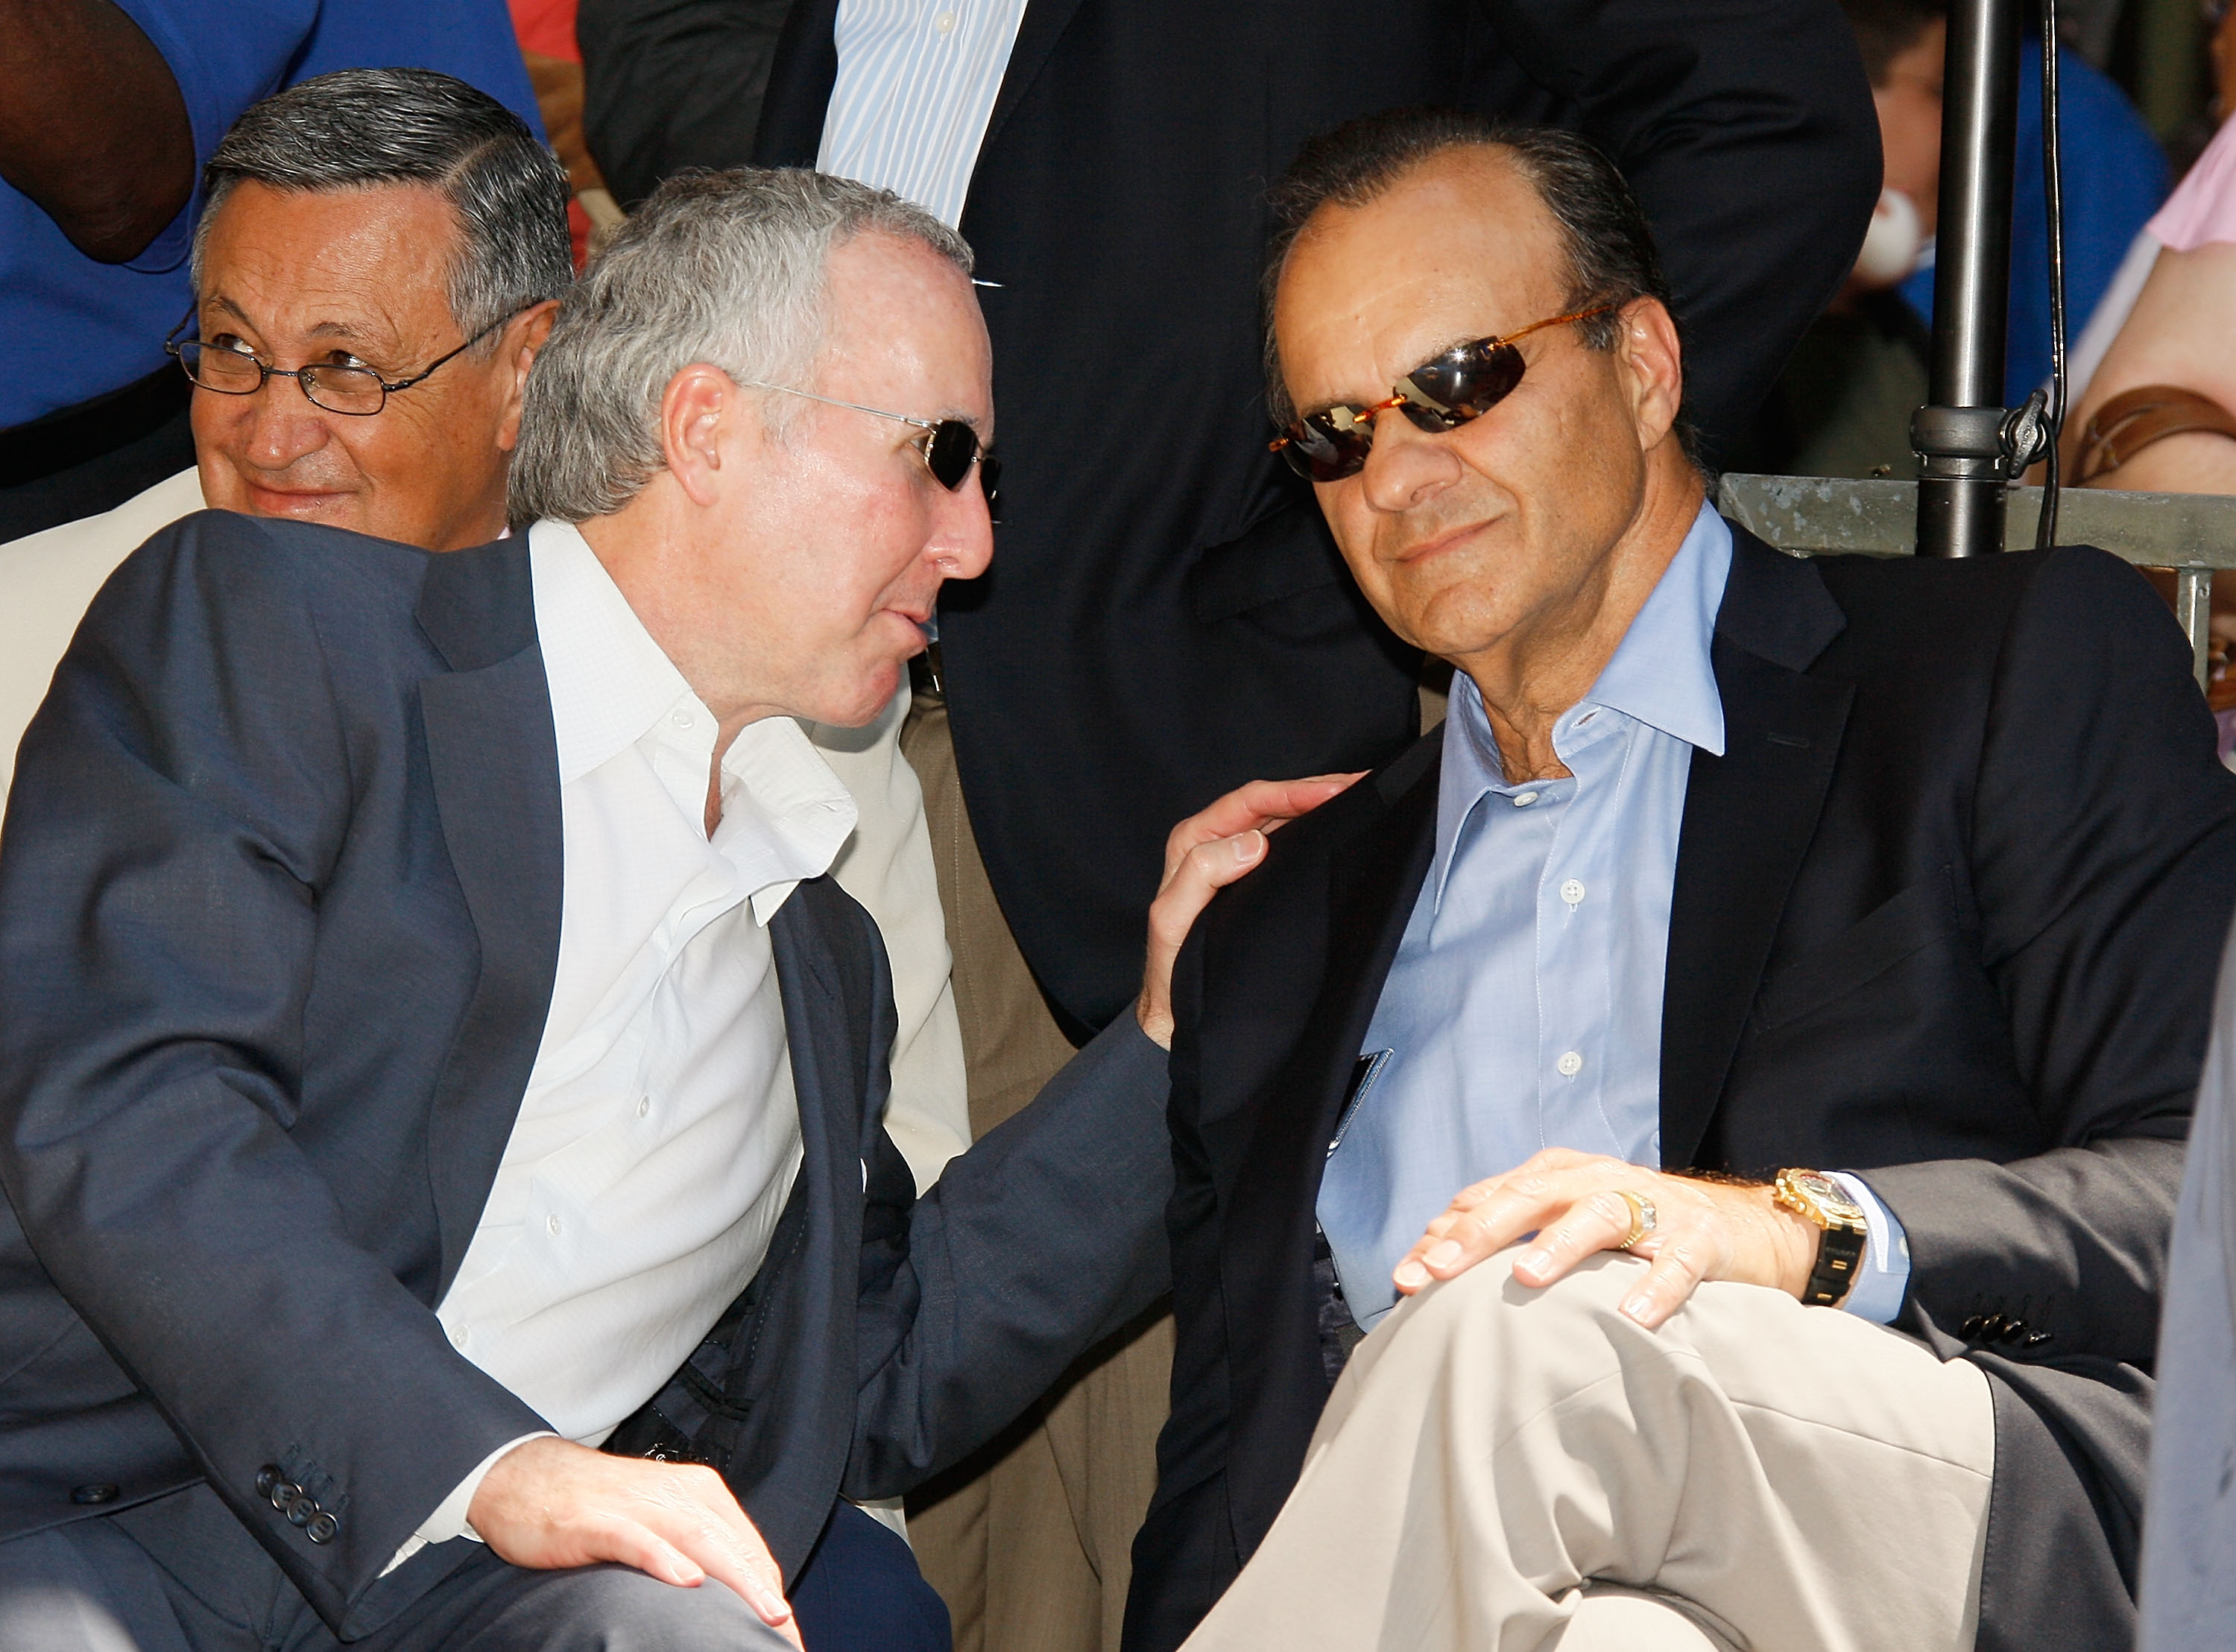 HOLLYWOOD - JUNE 20:  Team owner Frank McCourt (L) and manager Joe Torre attend a special star ceremony honoring the Los Angeles Dodgers with an Award of Excellence on the Hollywood Walk of Fame on June 20, 2008 in Hollywood, California.  (Photo by Vince